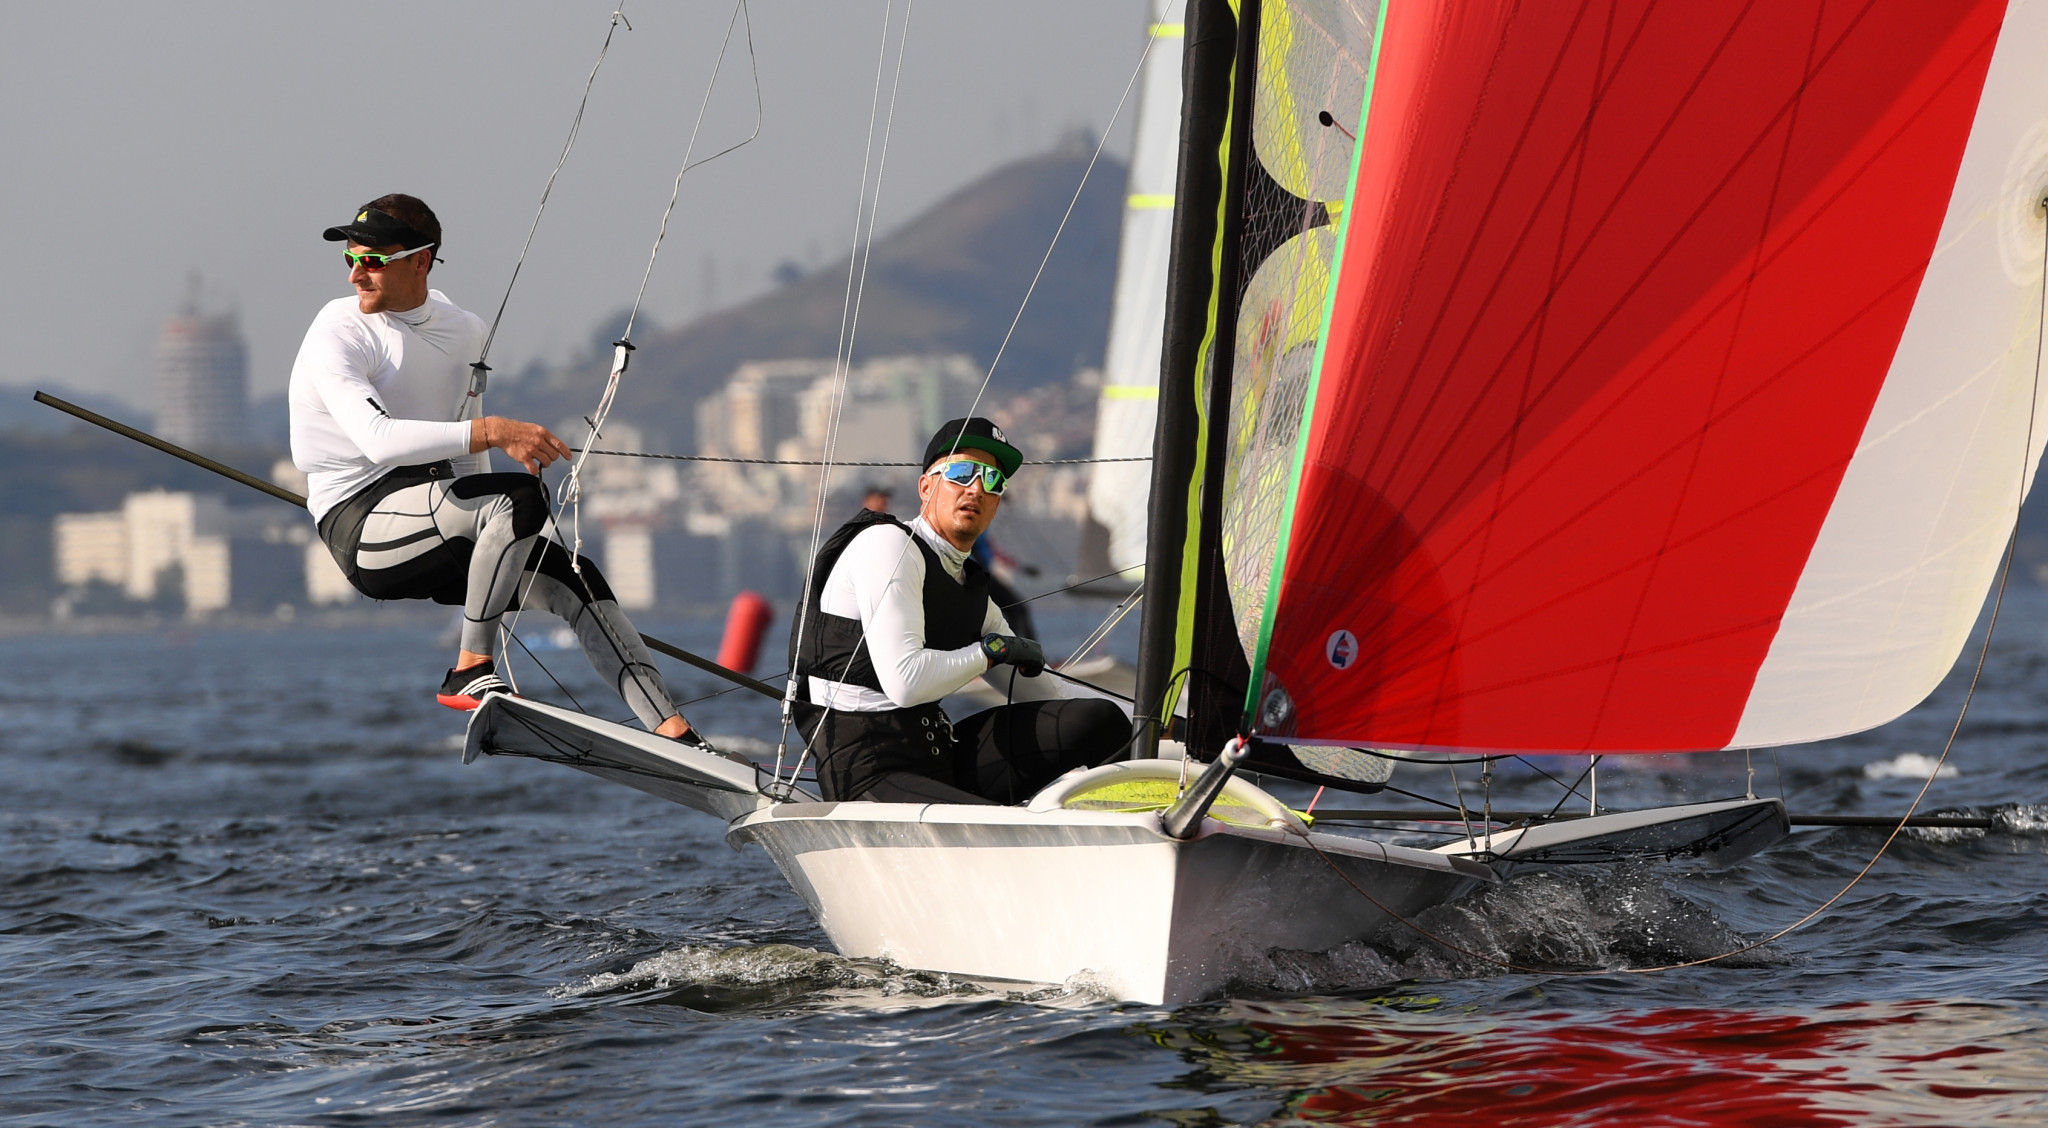 Polish pair edge closer to 49er gold at European Championships